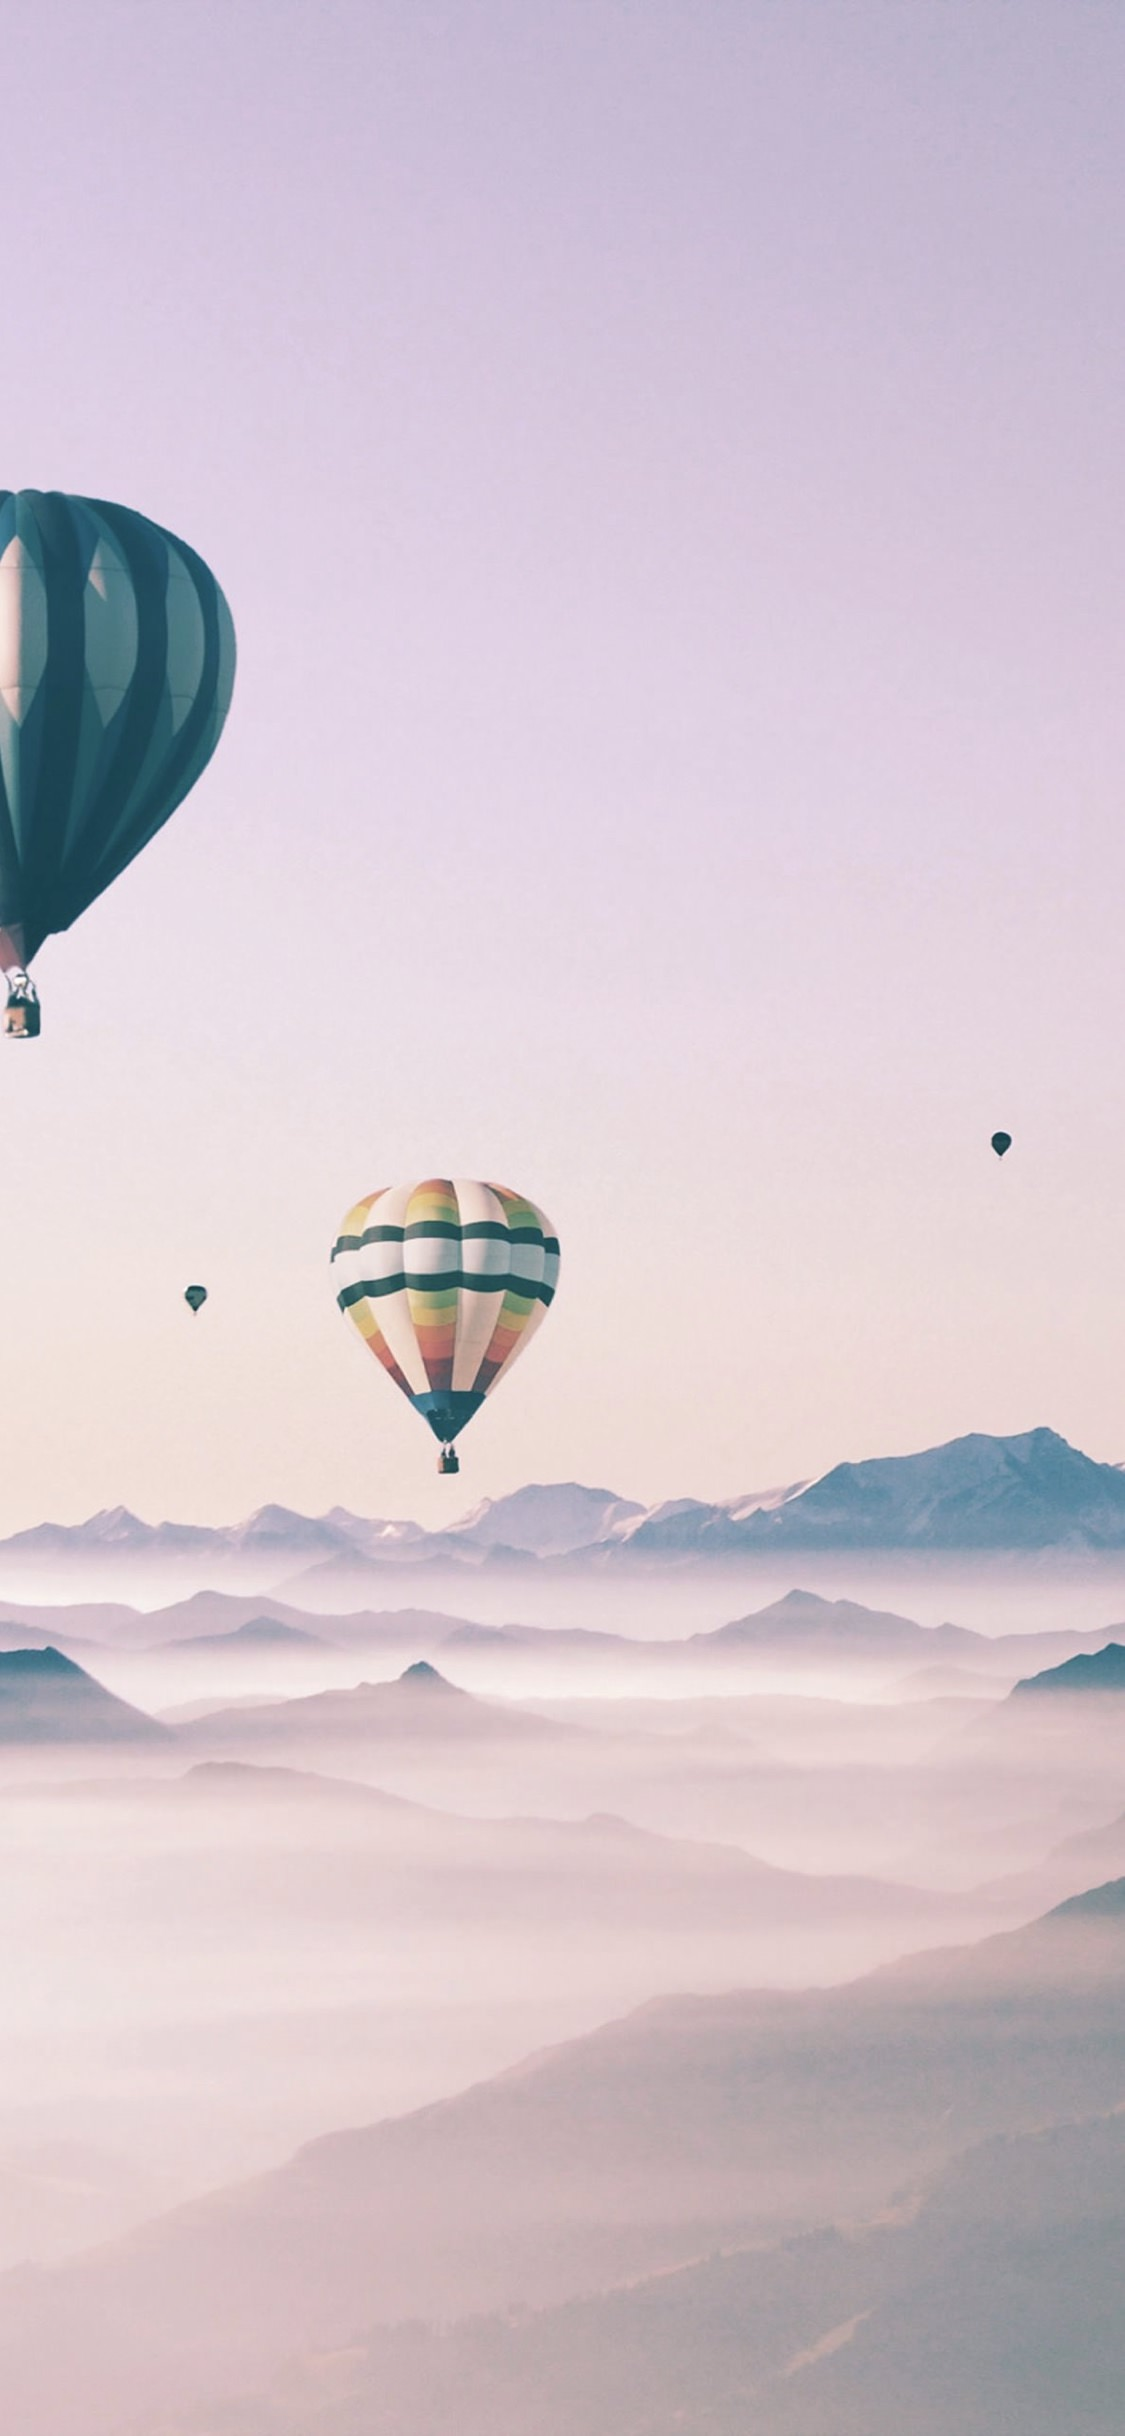 Cute Landscape Sky Balloon For Girls Wallpaper Sc Iphonexs